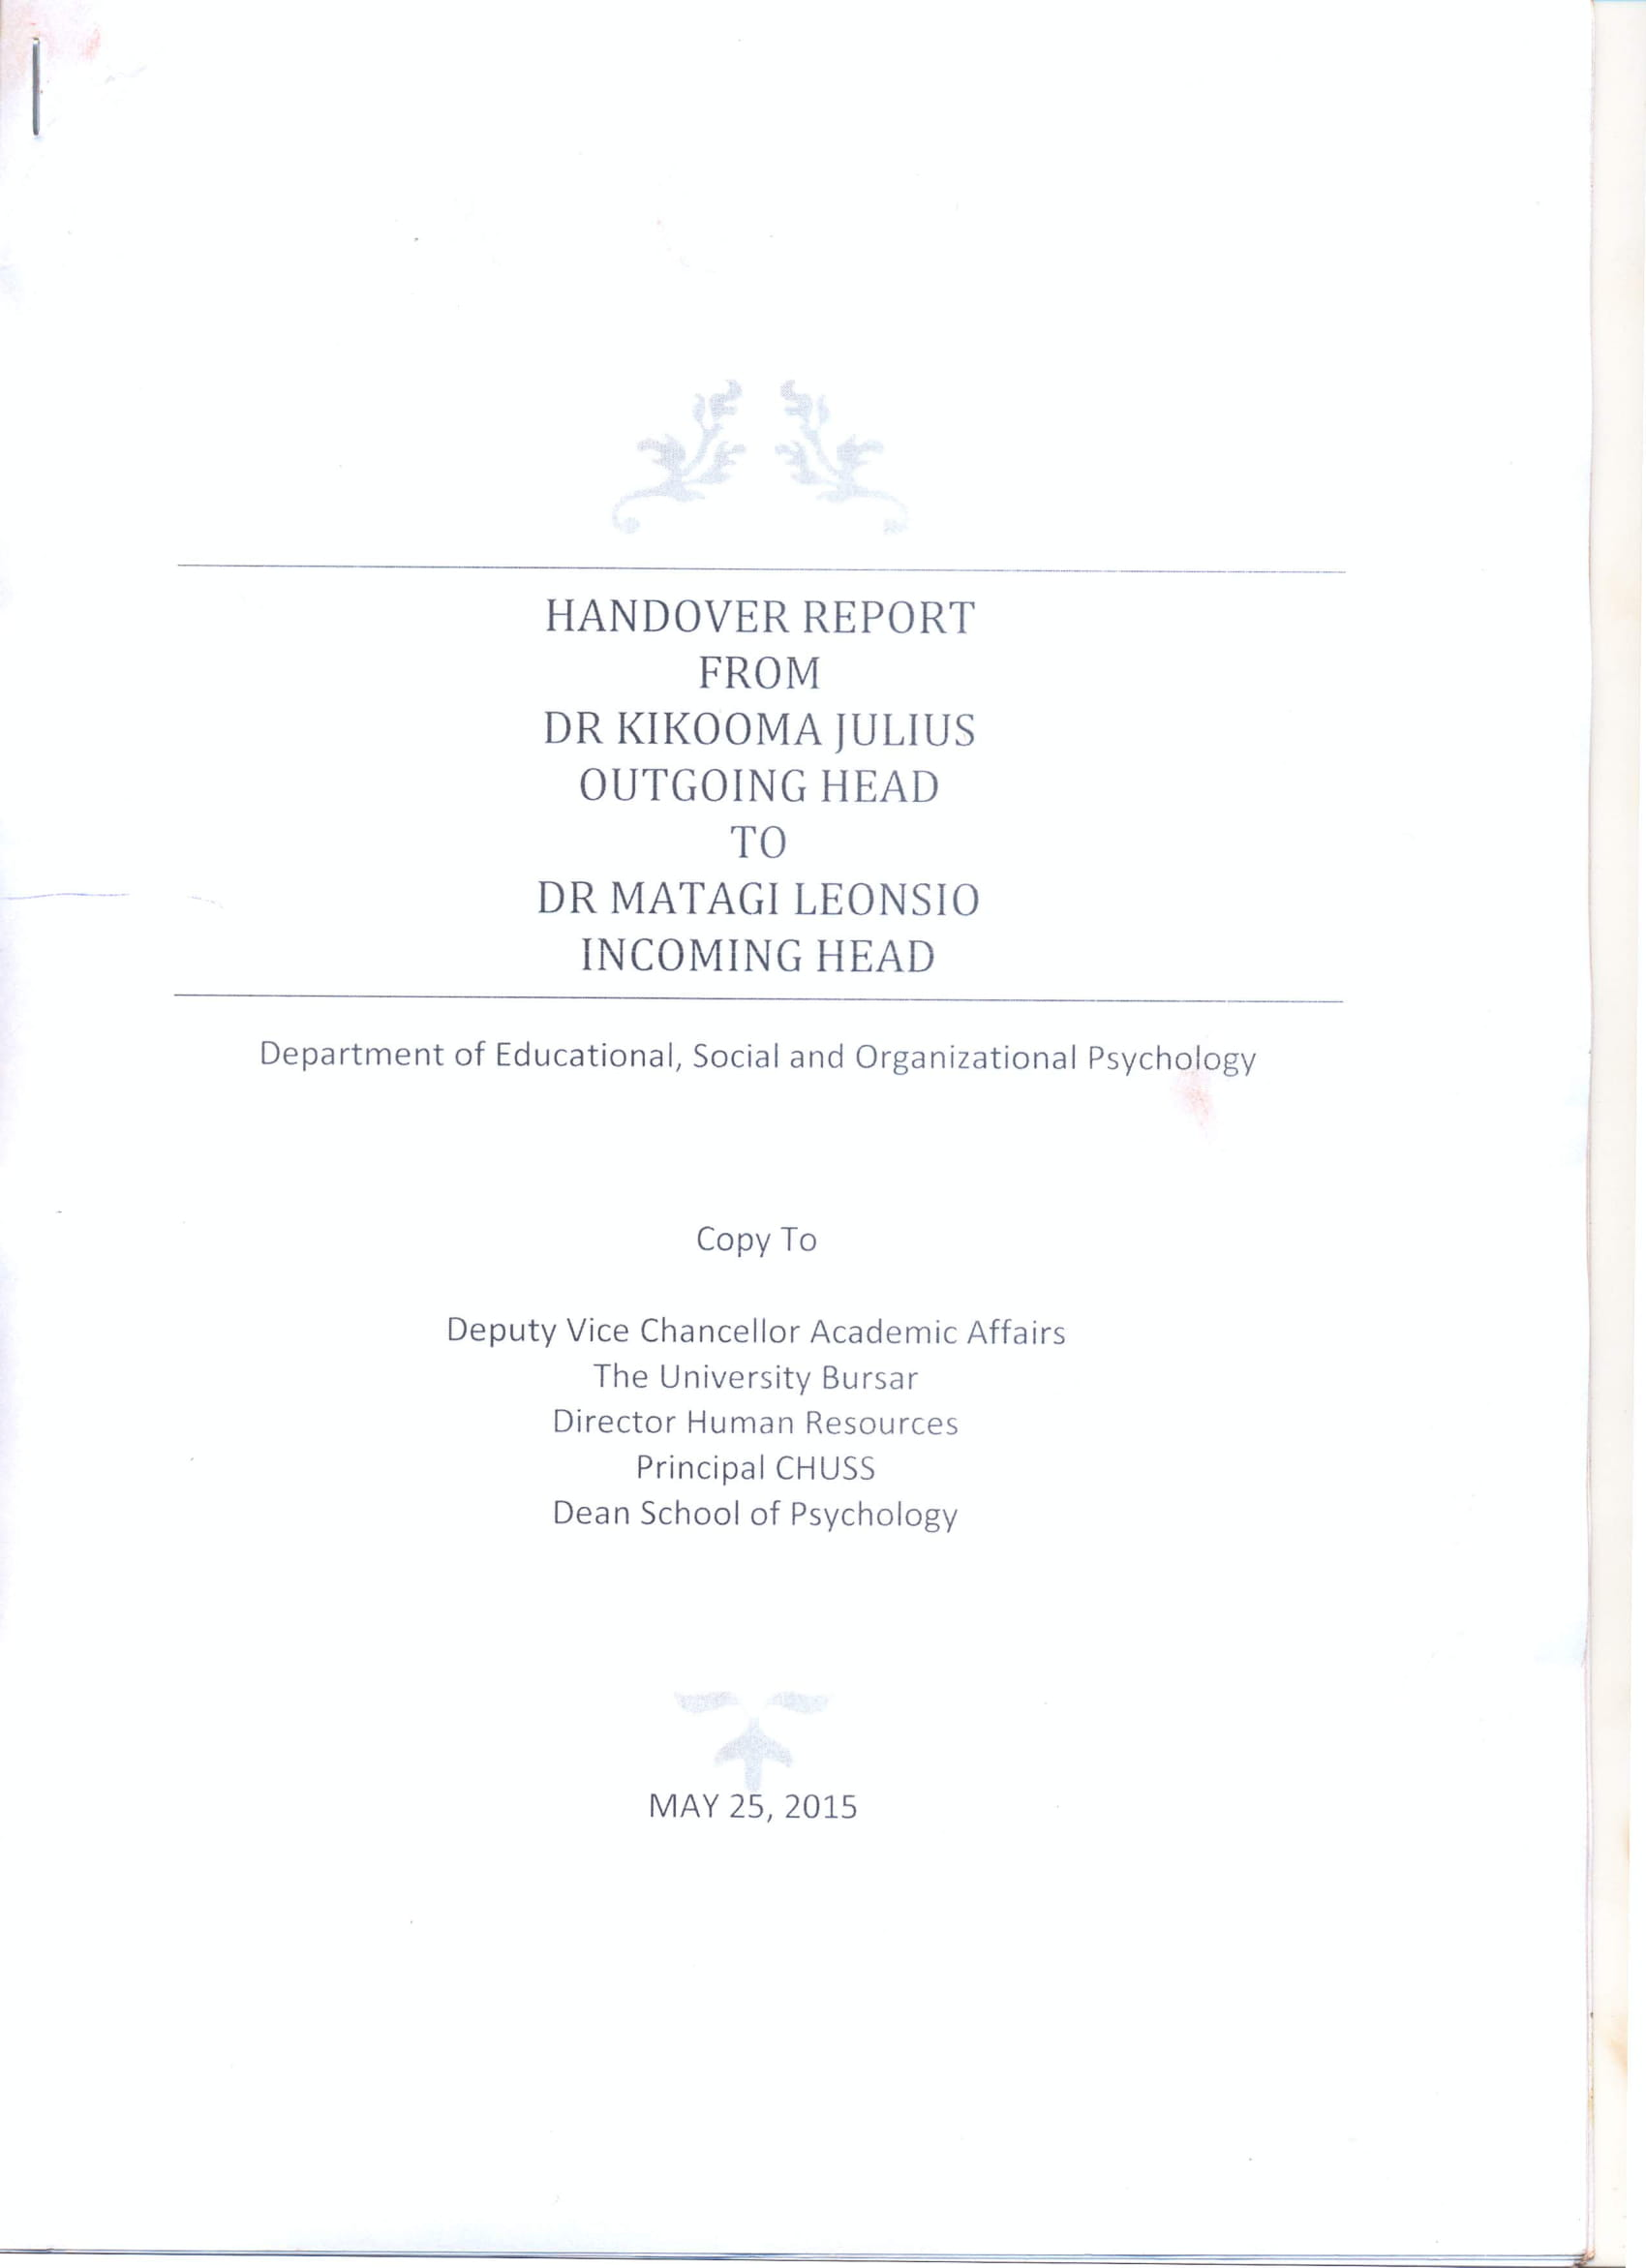 detailed handover report example 1